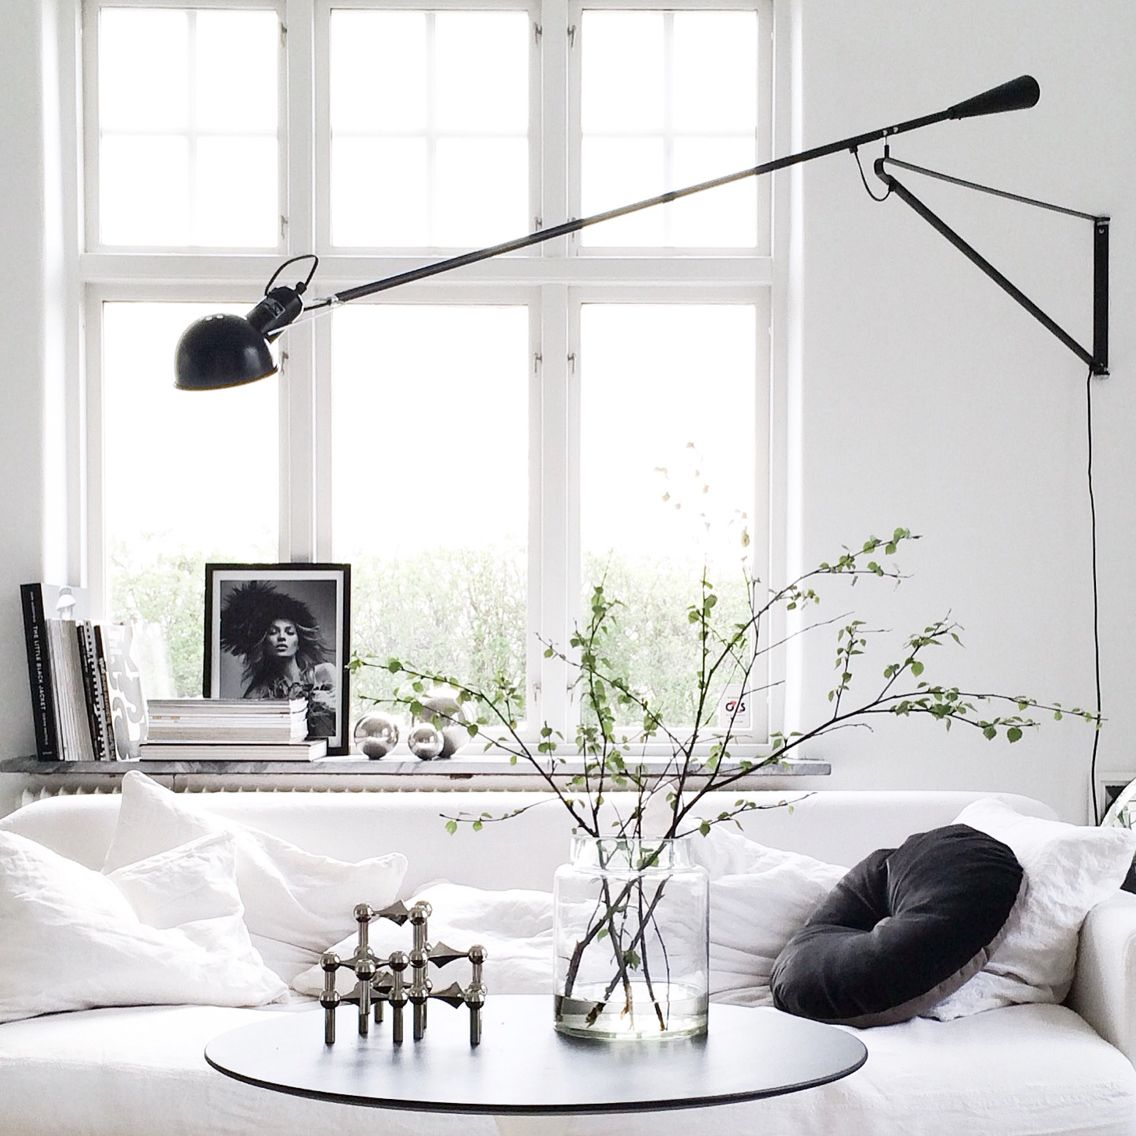 Flos-Mod-265-Style-Long-Swing-Arm-Wall-Light-Black-Long-Arm-Mountable-1